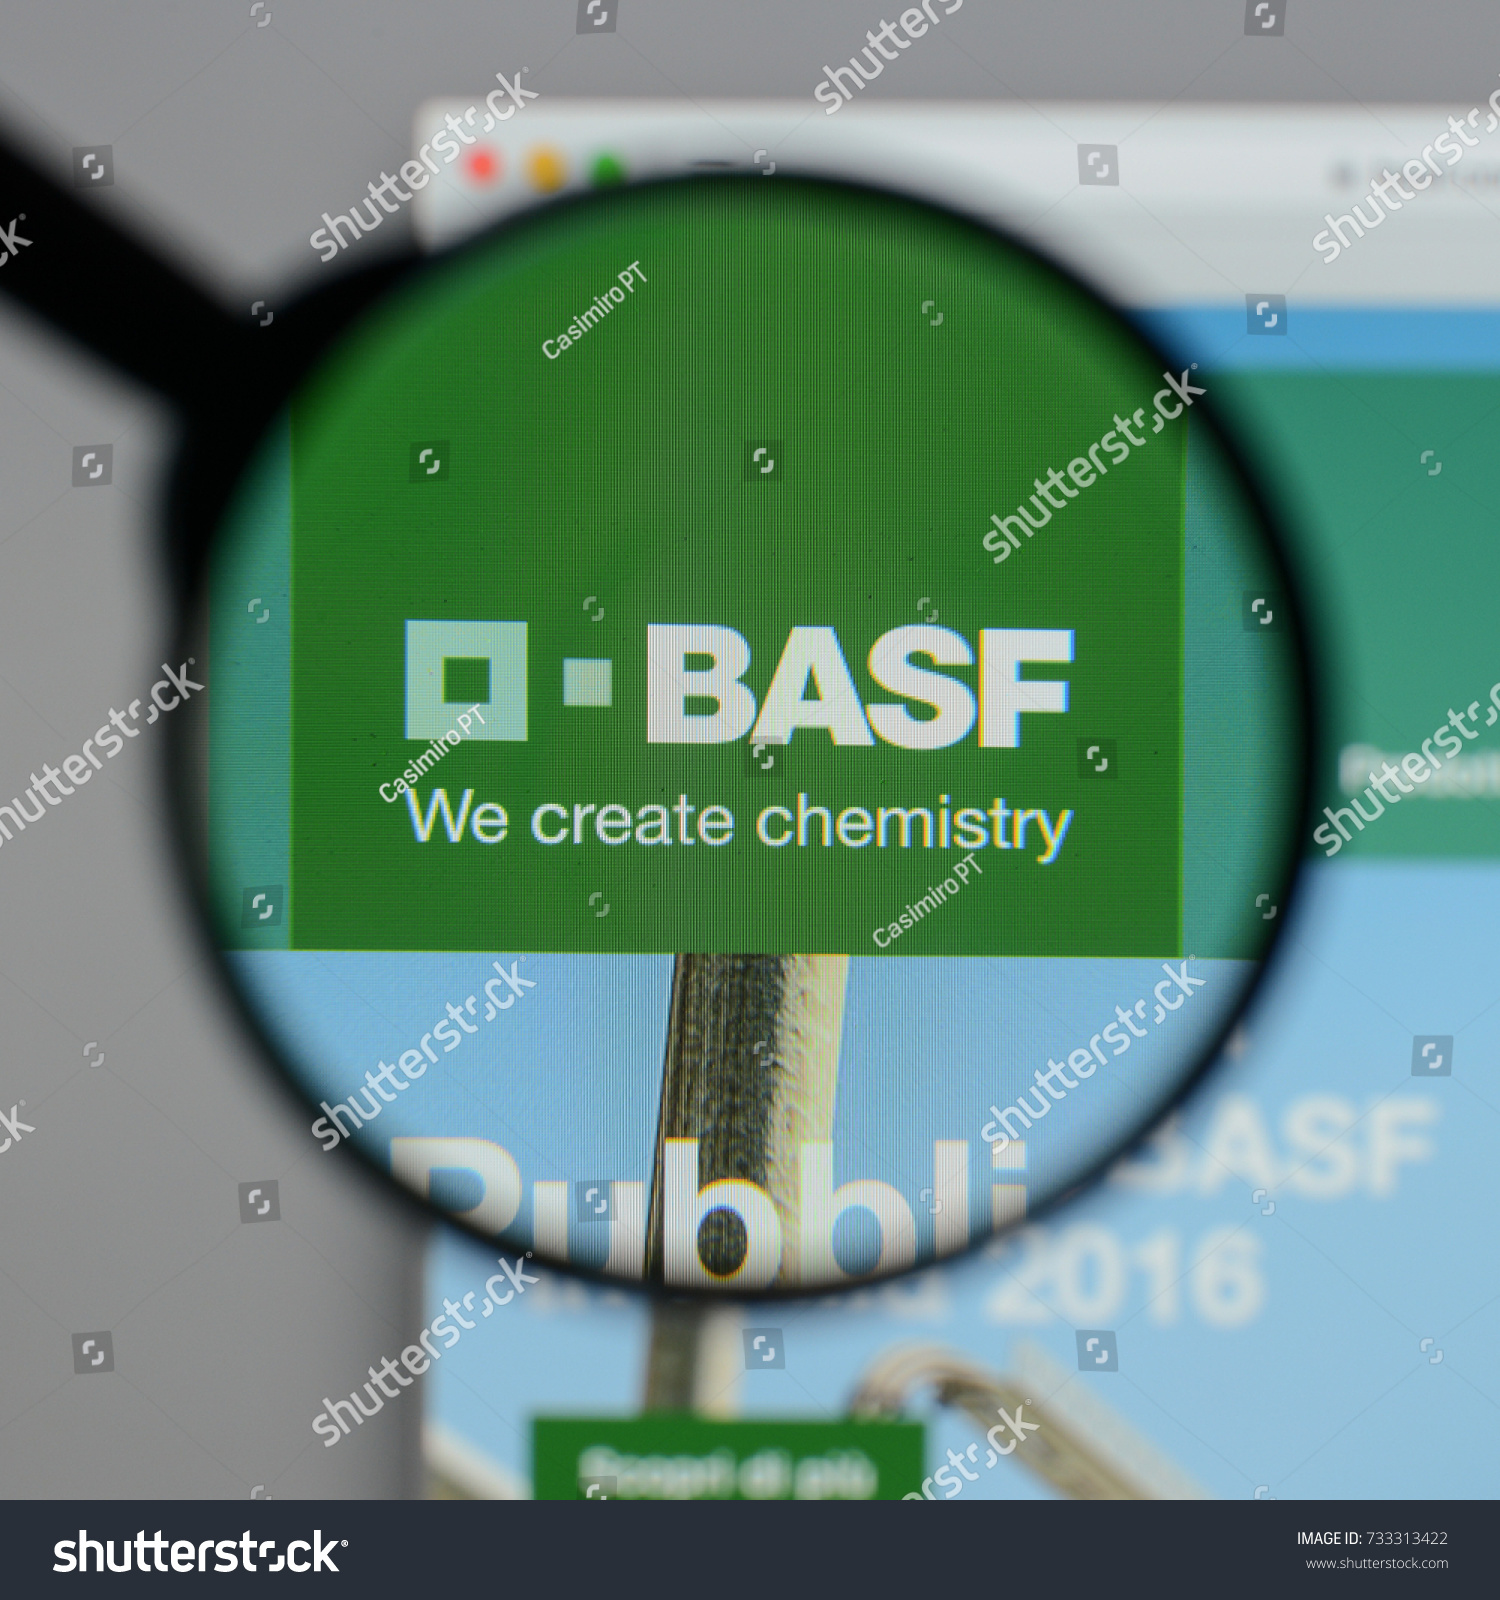 Milan Italy August 10 2017 Basf Stock Photo Edit Now 733313422